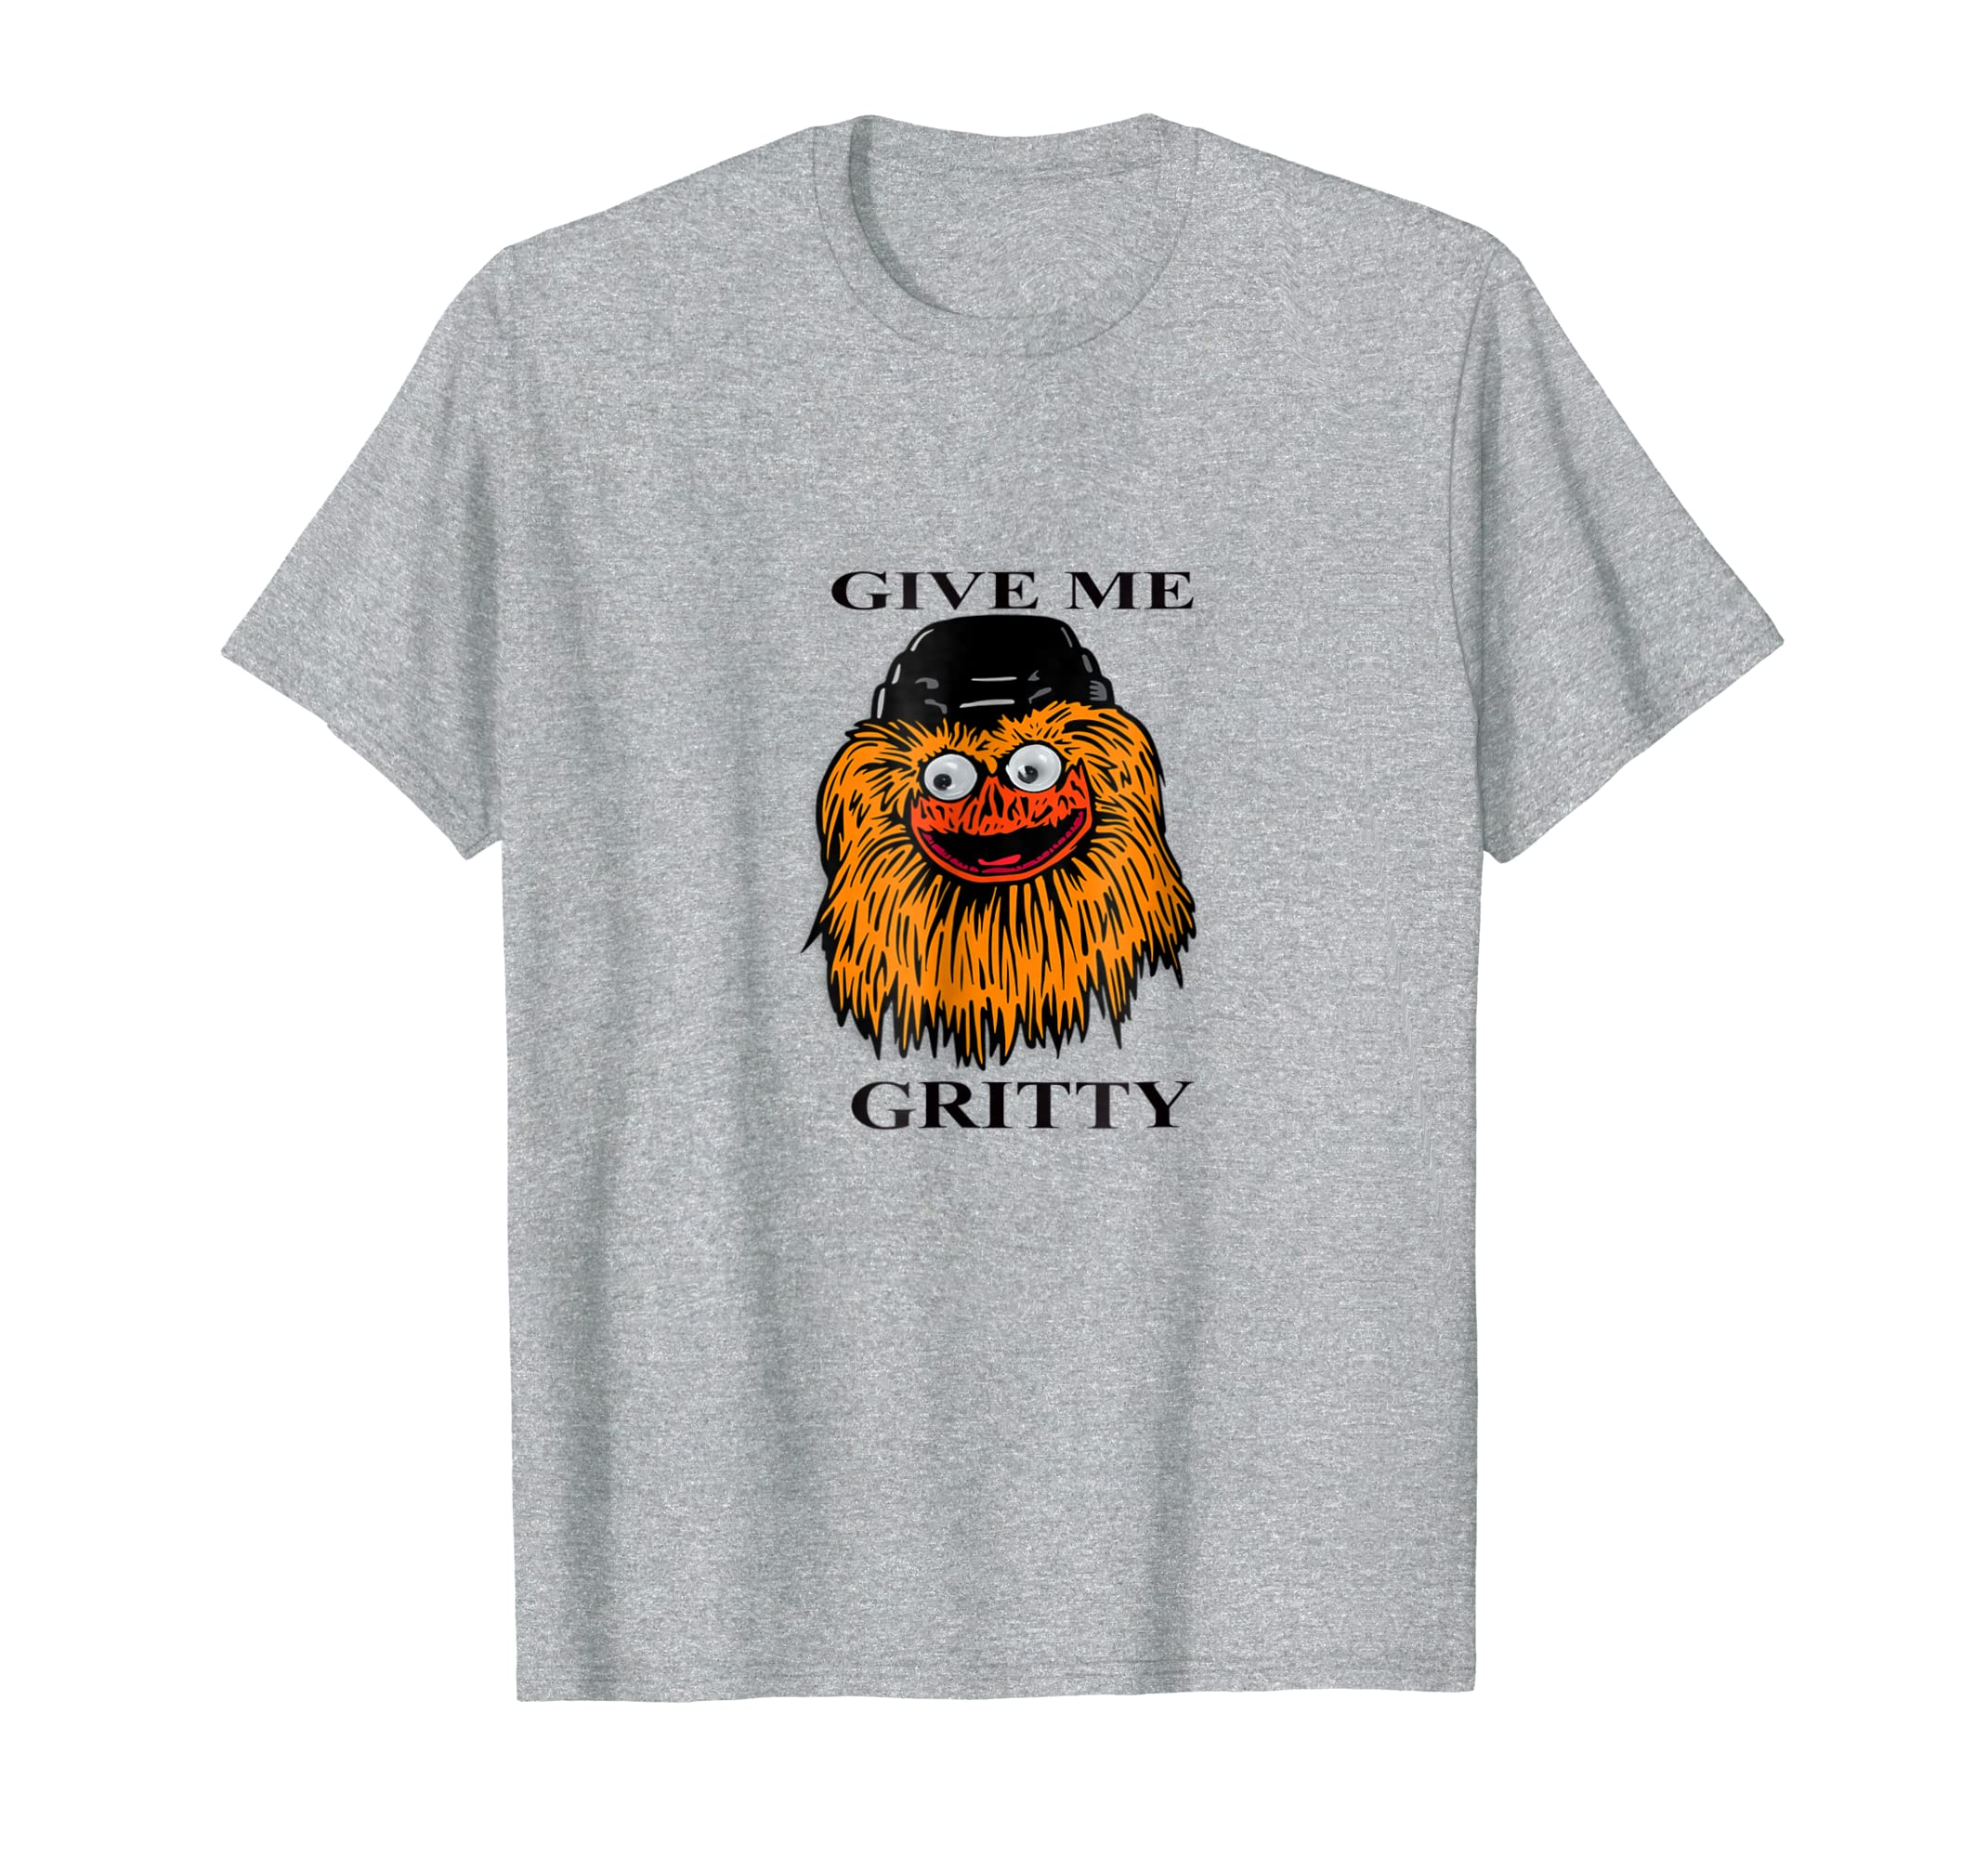 be032851 Funny give me gritty keep it gritty hockey t shirt-azvn – Anzvntee